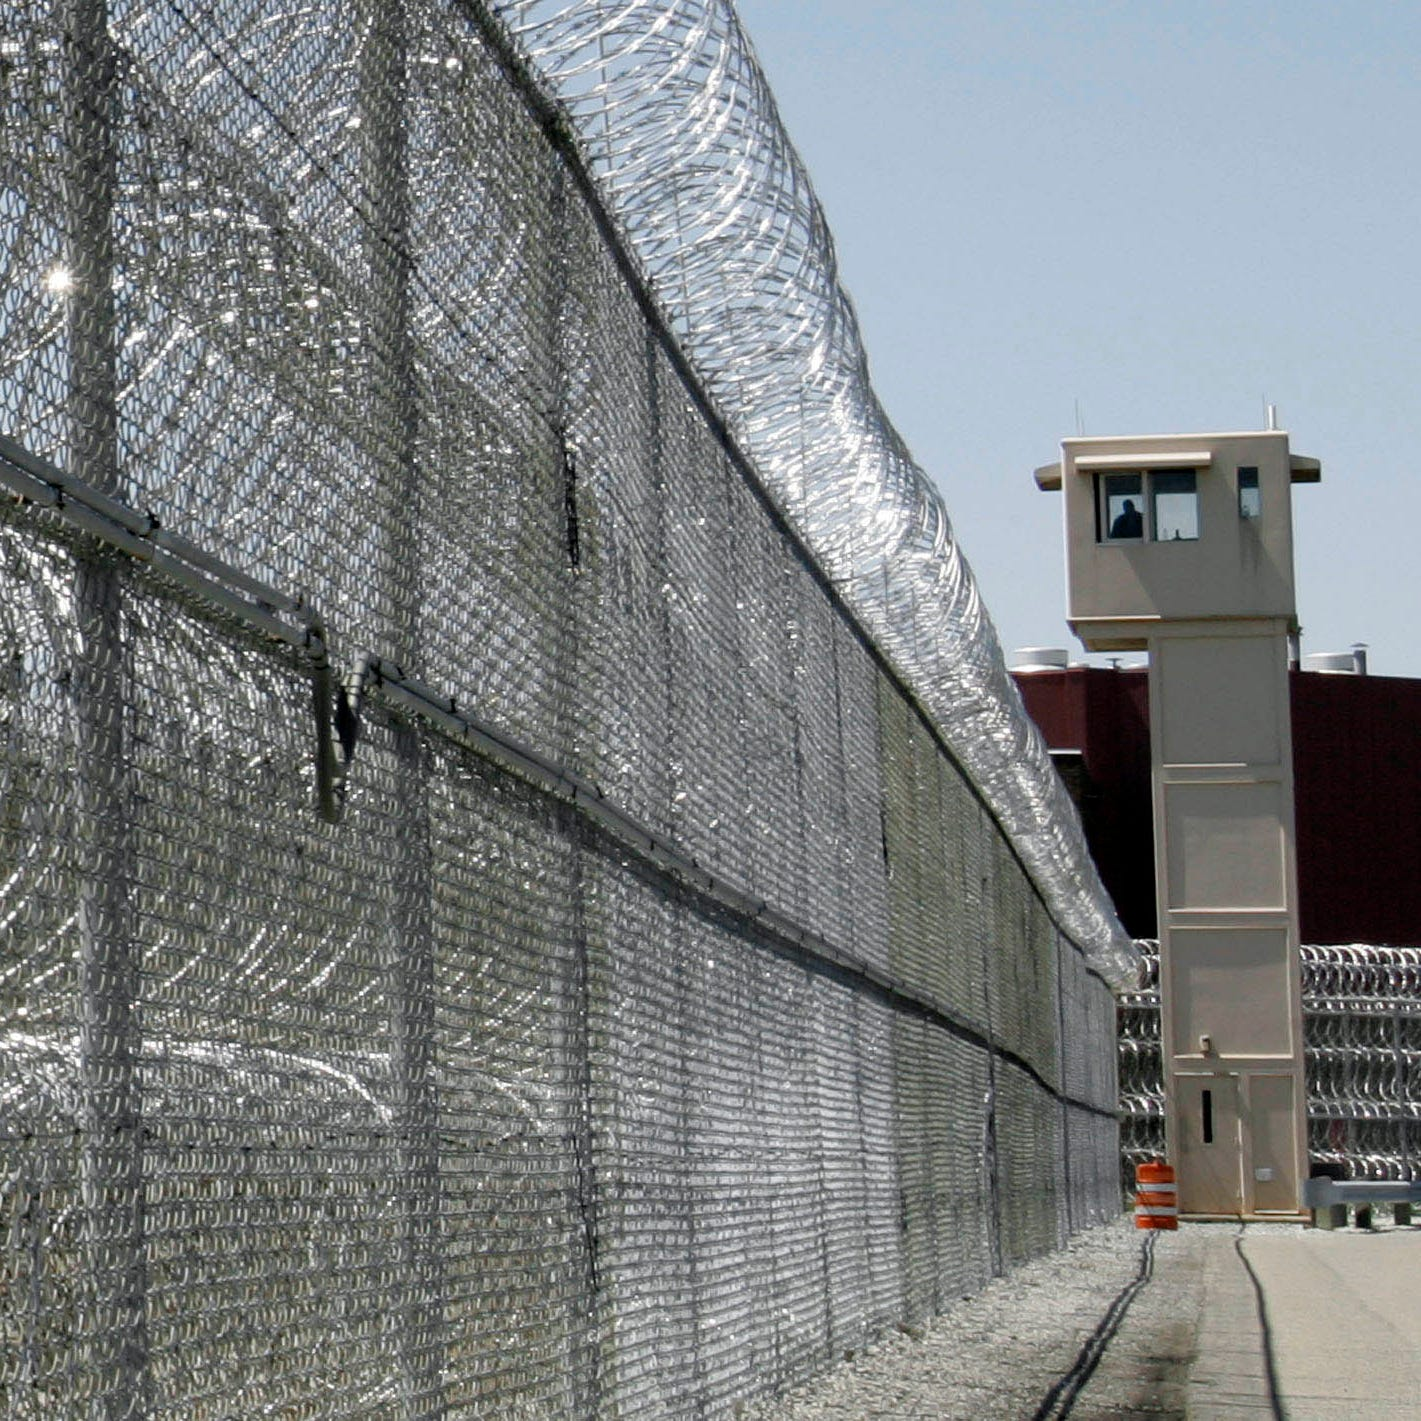 Inmate: I nearly bled to death after miscarriage at Michigan prison